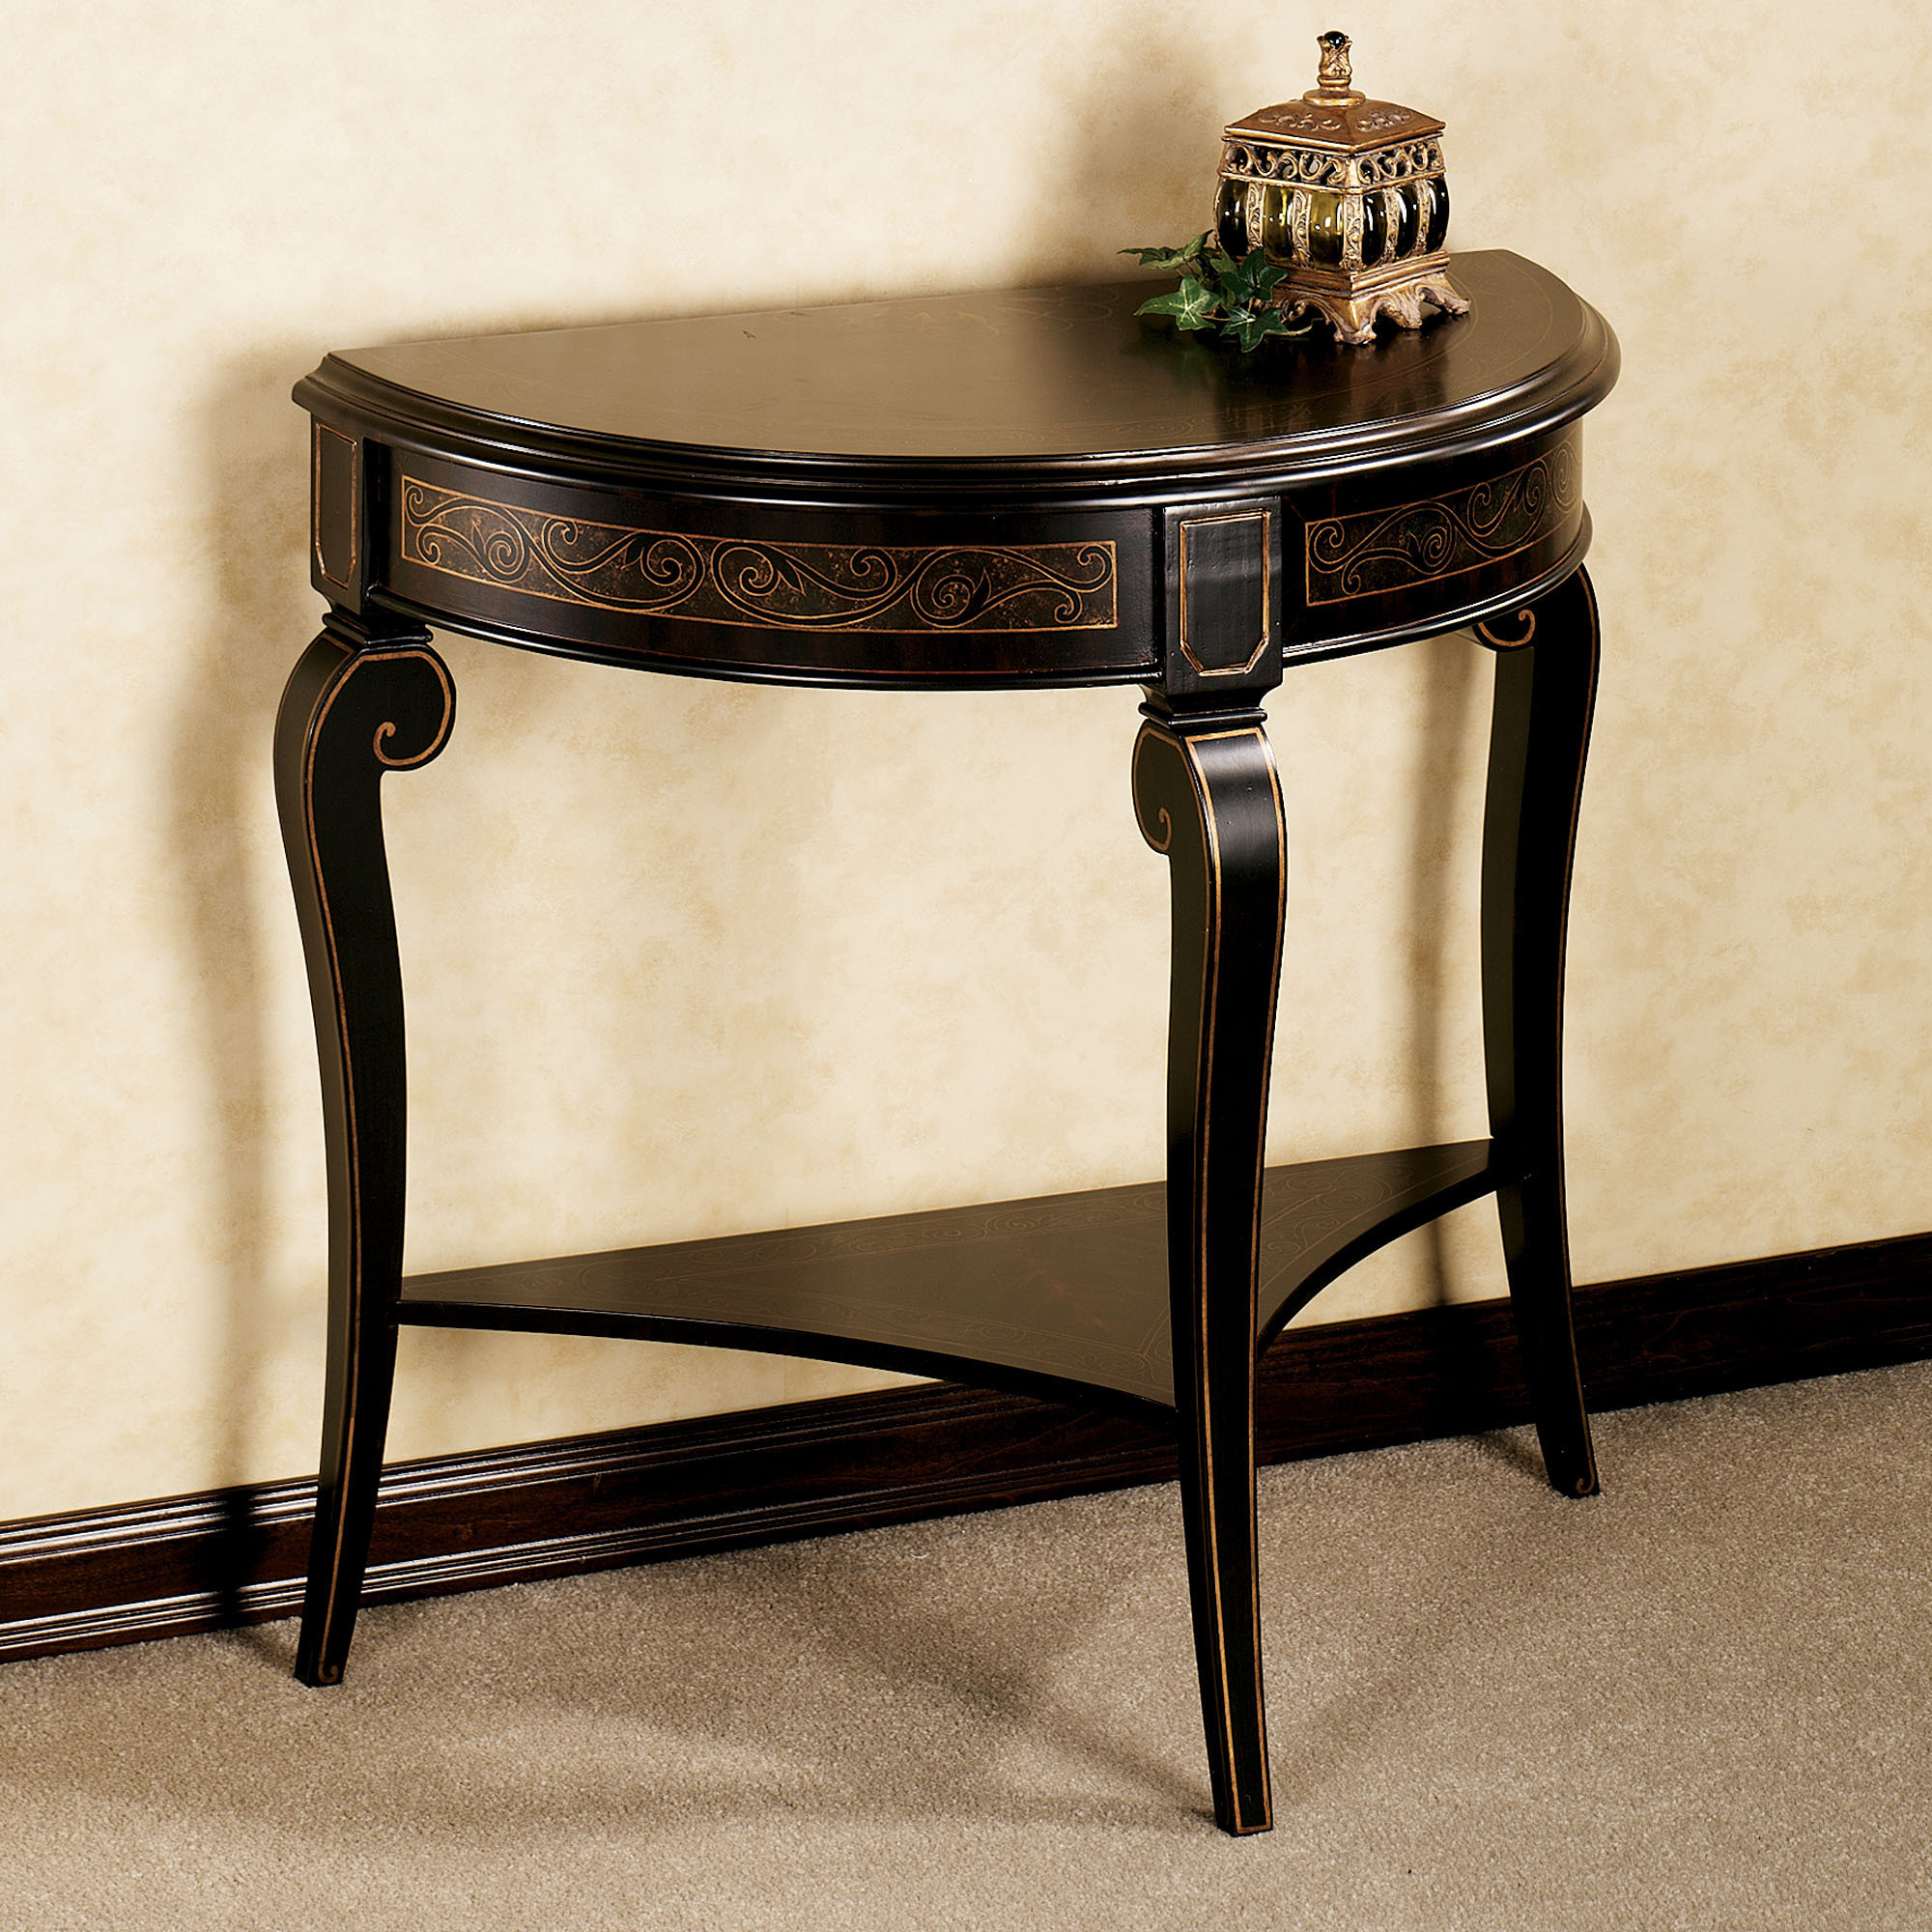 decor breathtaking foyer table make wonderful your home furniture elegant frugal orleans marble top half round dark brown solid wood design with under shelf standing beige capet